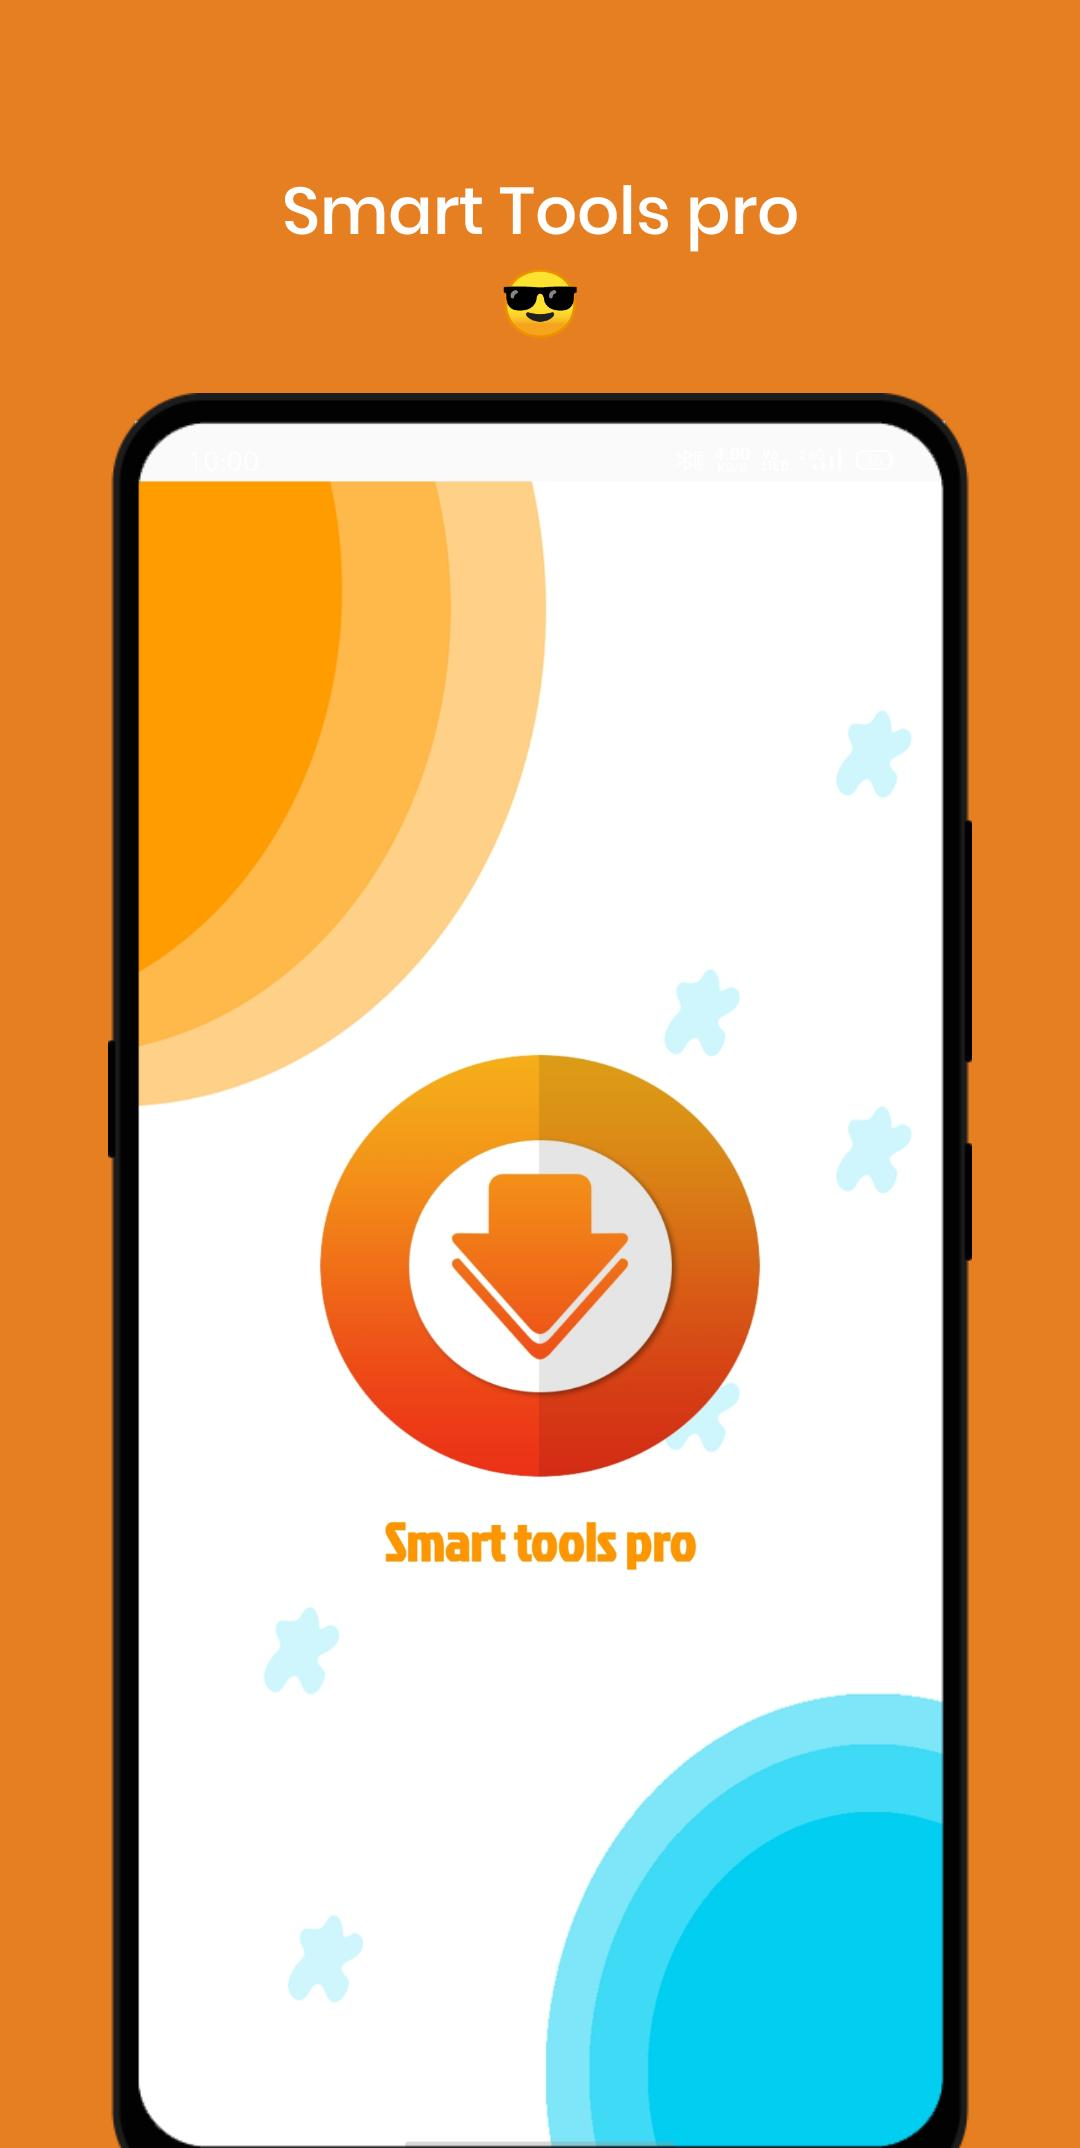 Tool Skin Pro Apkpure - Tool Skin Apk Download For Android ...